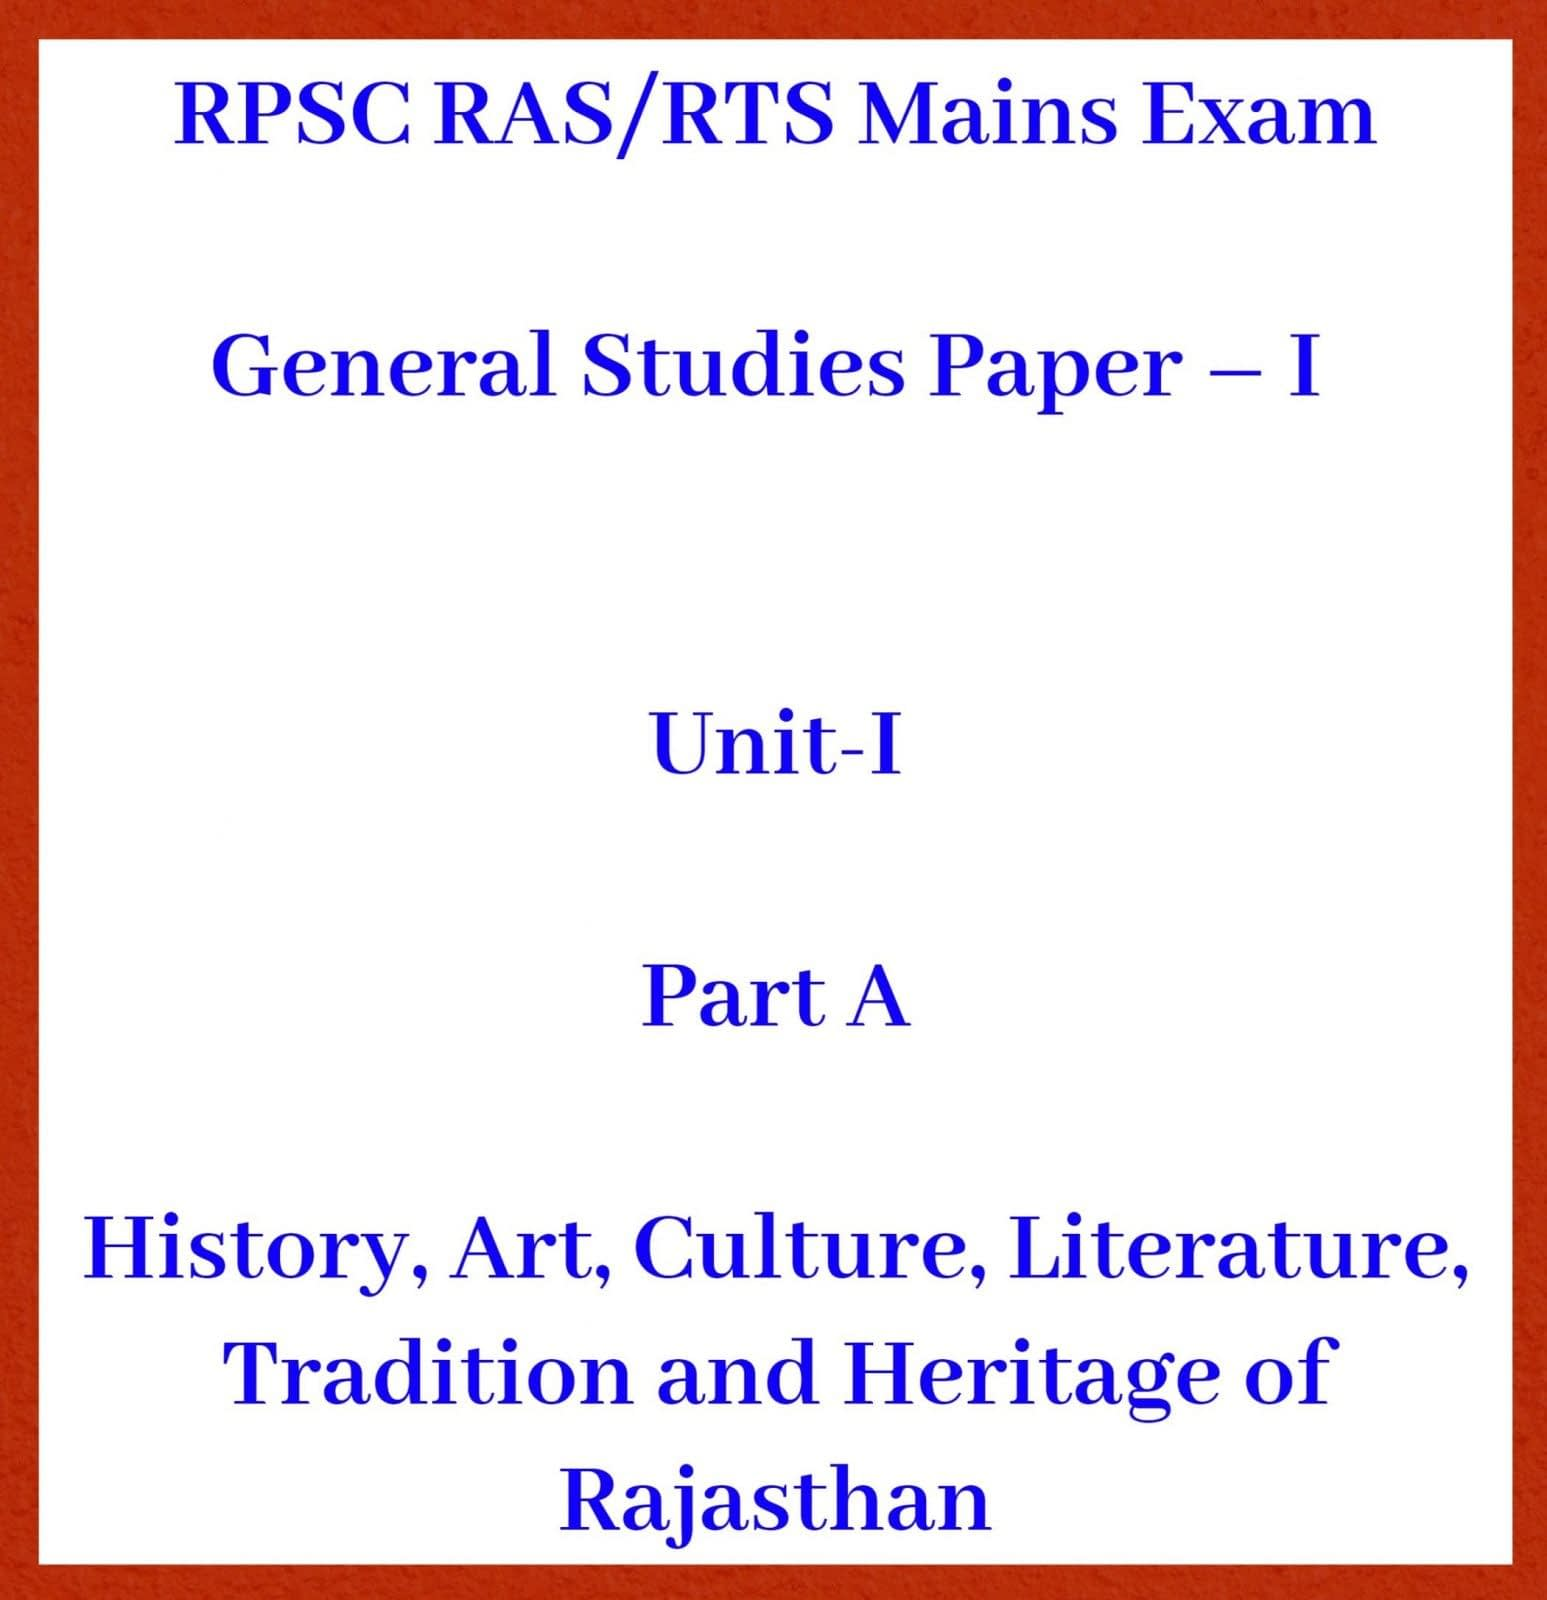 RPSC RAS Mains: History, Art, Culture, Literature of Rajasthan